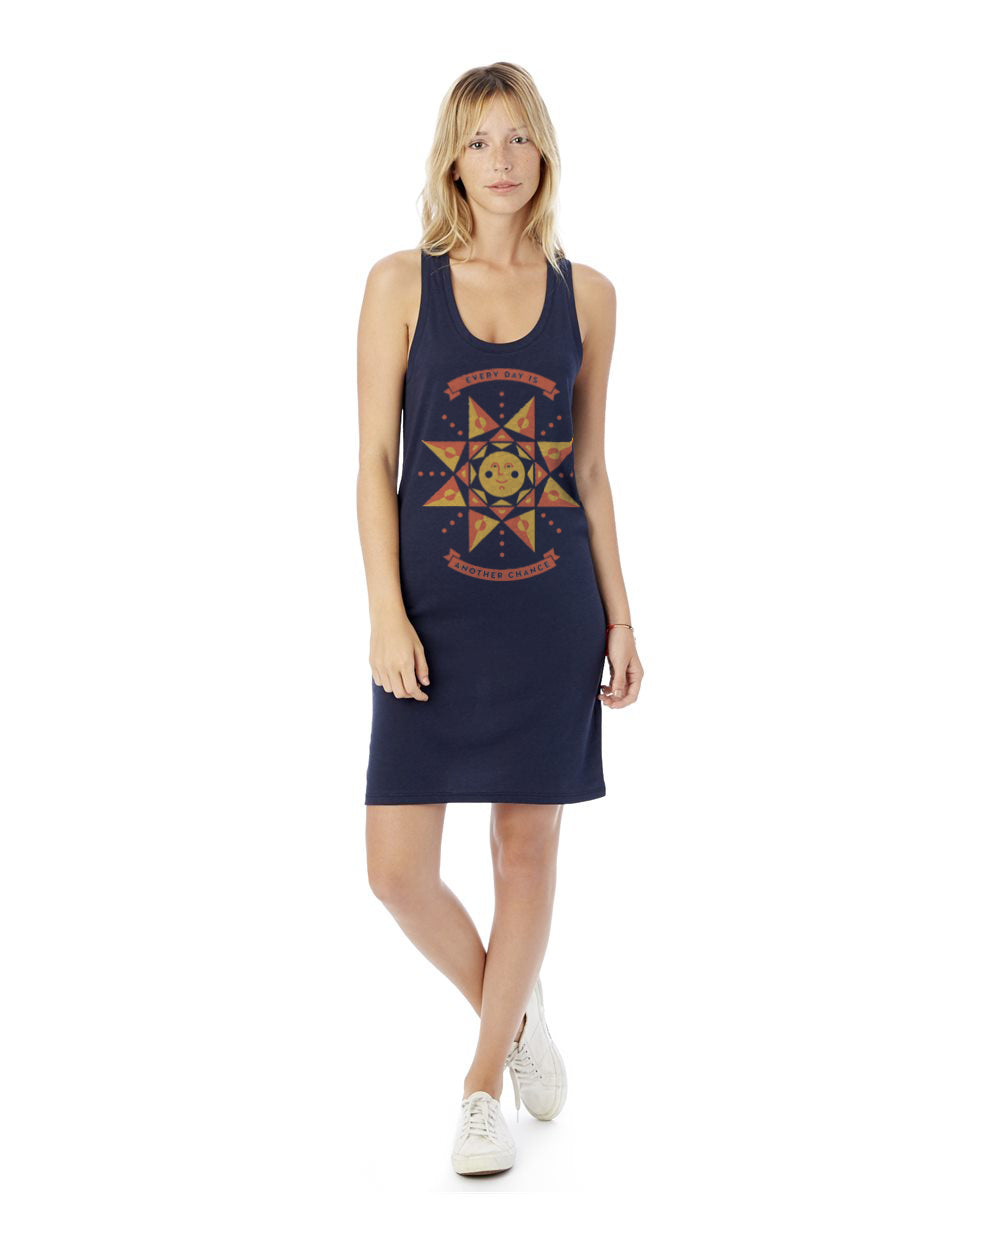 Every Day Is Another Chance Sun Women's Cotton Modal Jersey Tank Dress